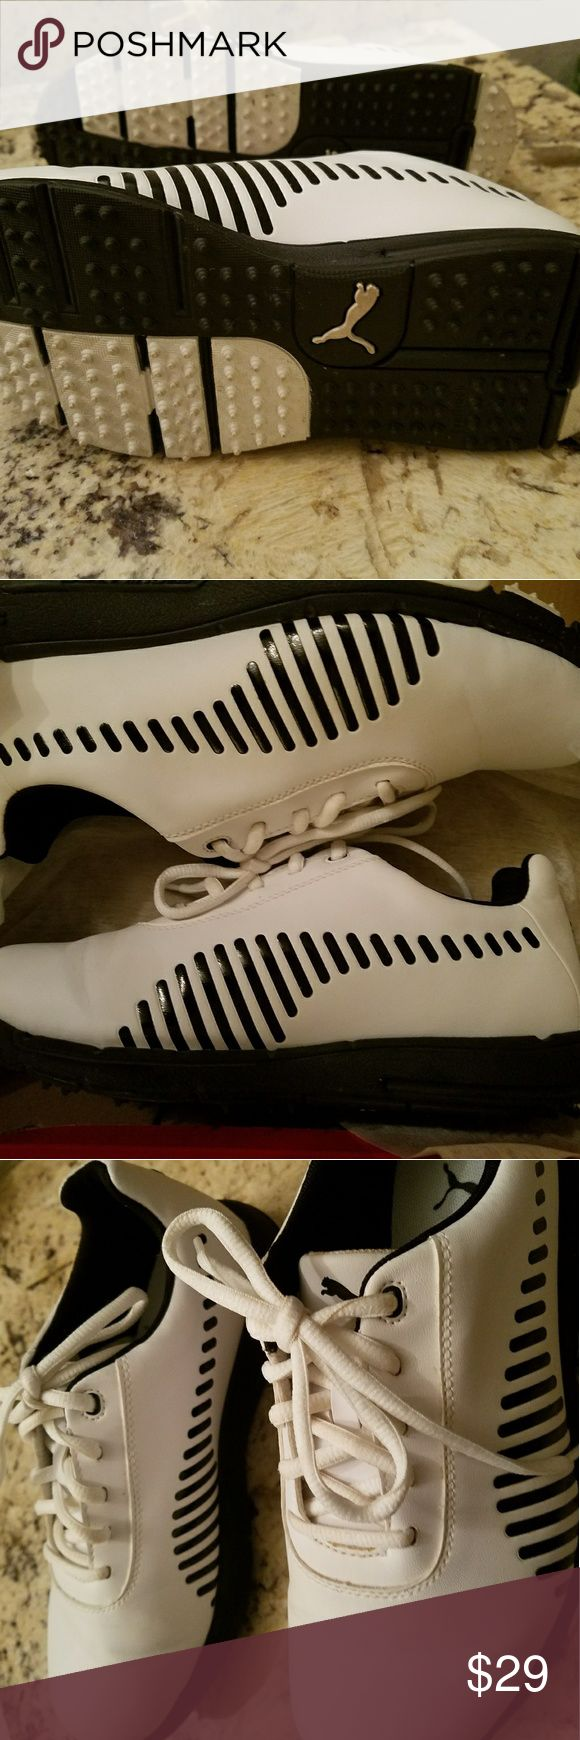 Puma B/W Jr. Ladies Golf Shoes-Like new! **Now on Sale**They were worn only once for a few hours to a golf tournament event. Like New condition! Classic black and white golf design. Jr size 5,like ladies size 6. Puma Shoes Athletic Shoes